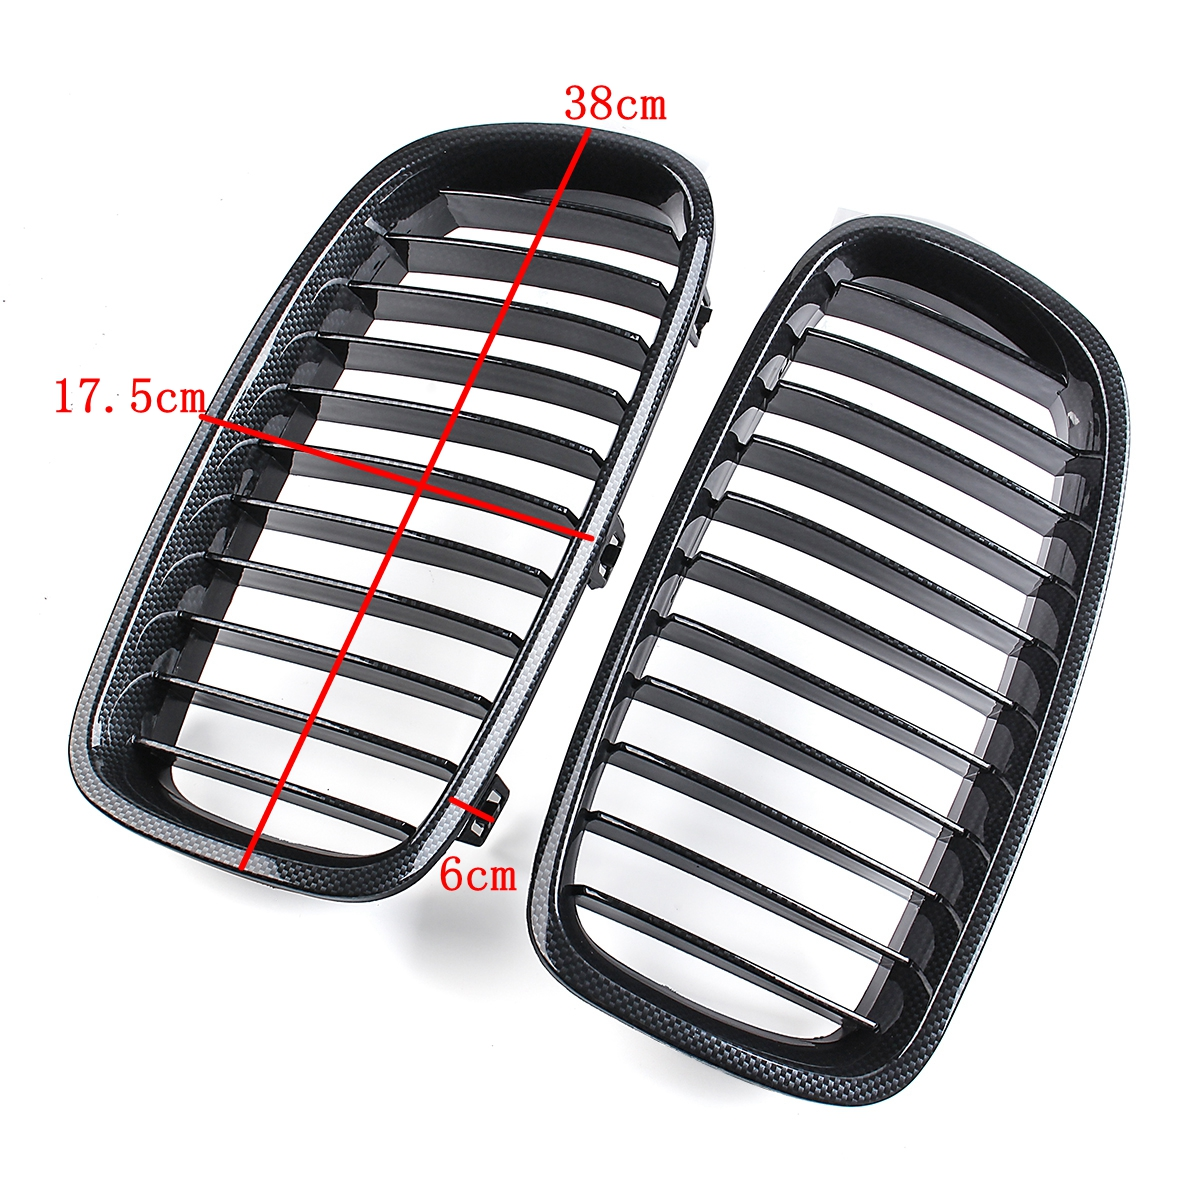 Pair Carbon Fiber ABS Front Kidney Grille For BMW F30 F31 F35 2012-up